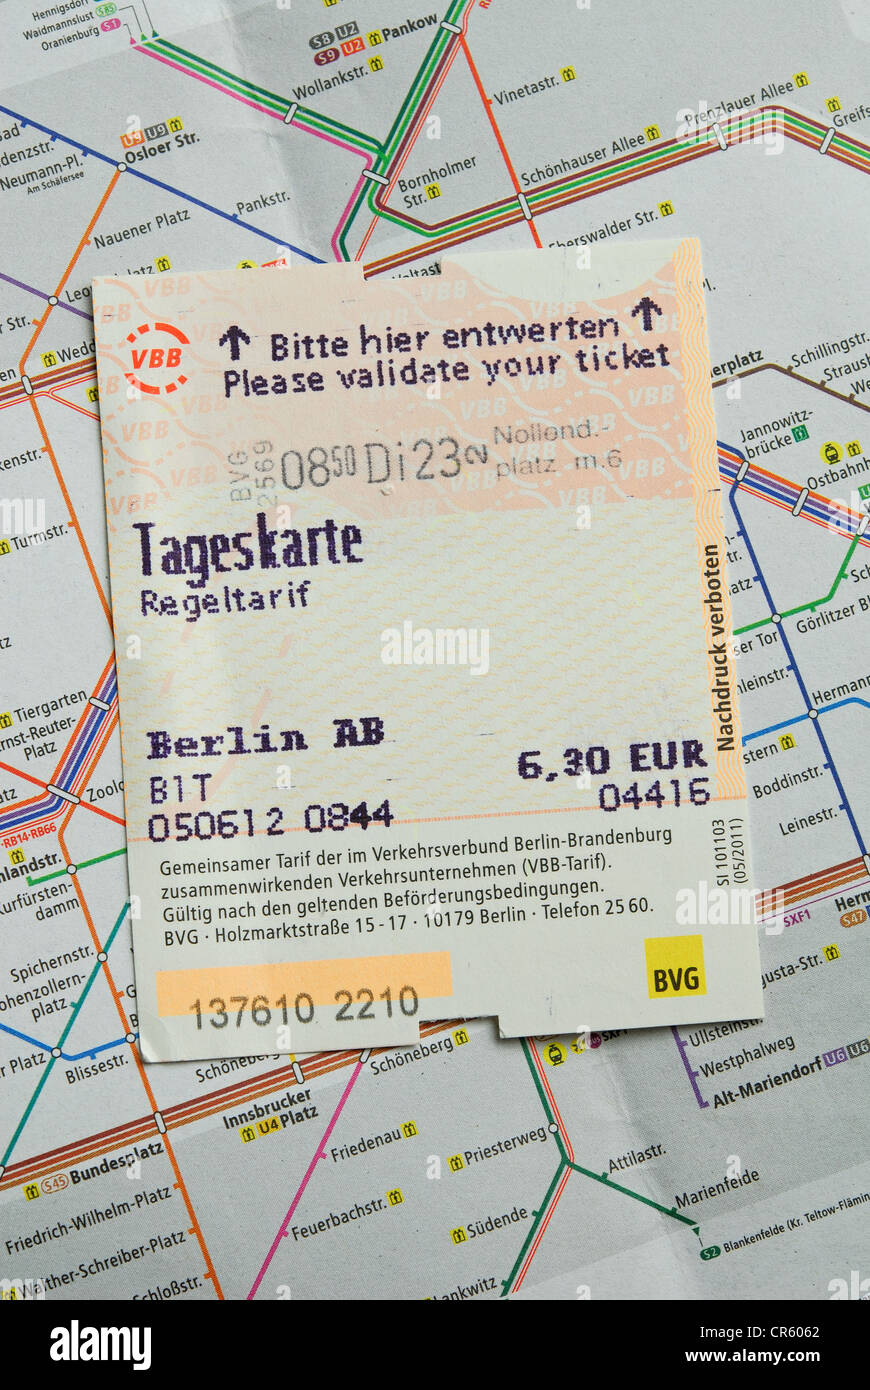 BERLIN, GERMANY. A validated tageskarte (travel card) on a map showing the Berlin U- and S-Bahn public transport Stock Photo